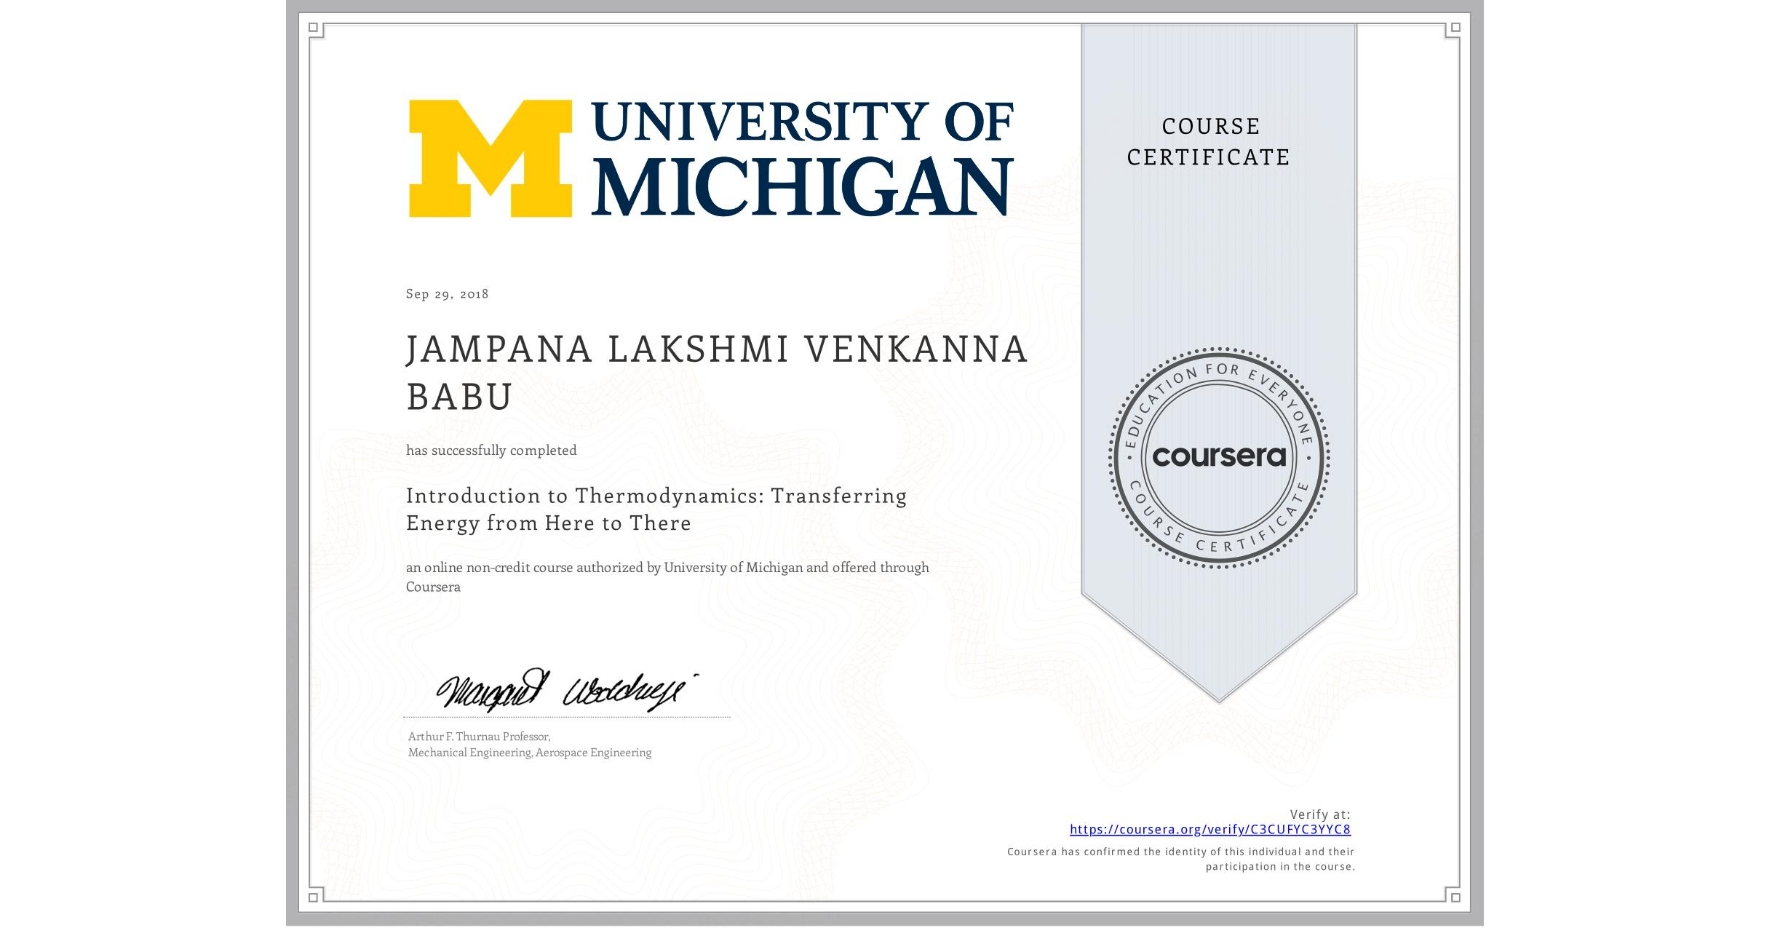 View certificate for JAMPANA LAKSHMI   VENKANNA BABU, Introduction to Thermodynamics: Transferring Energy from Here to There, an online non-credit course authorized by University of Michigan and offered through Coursera